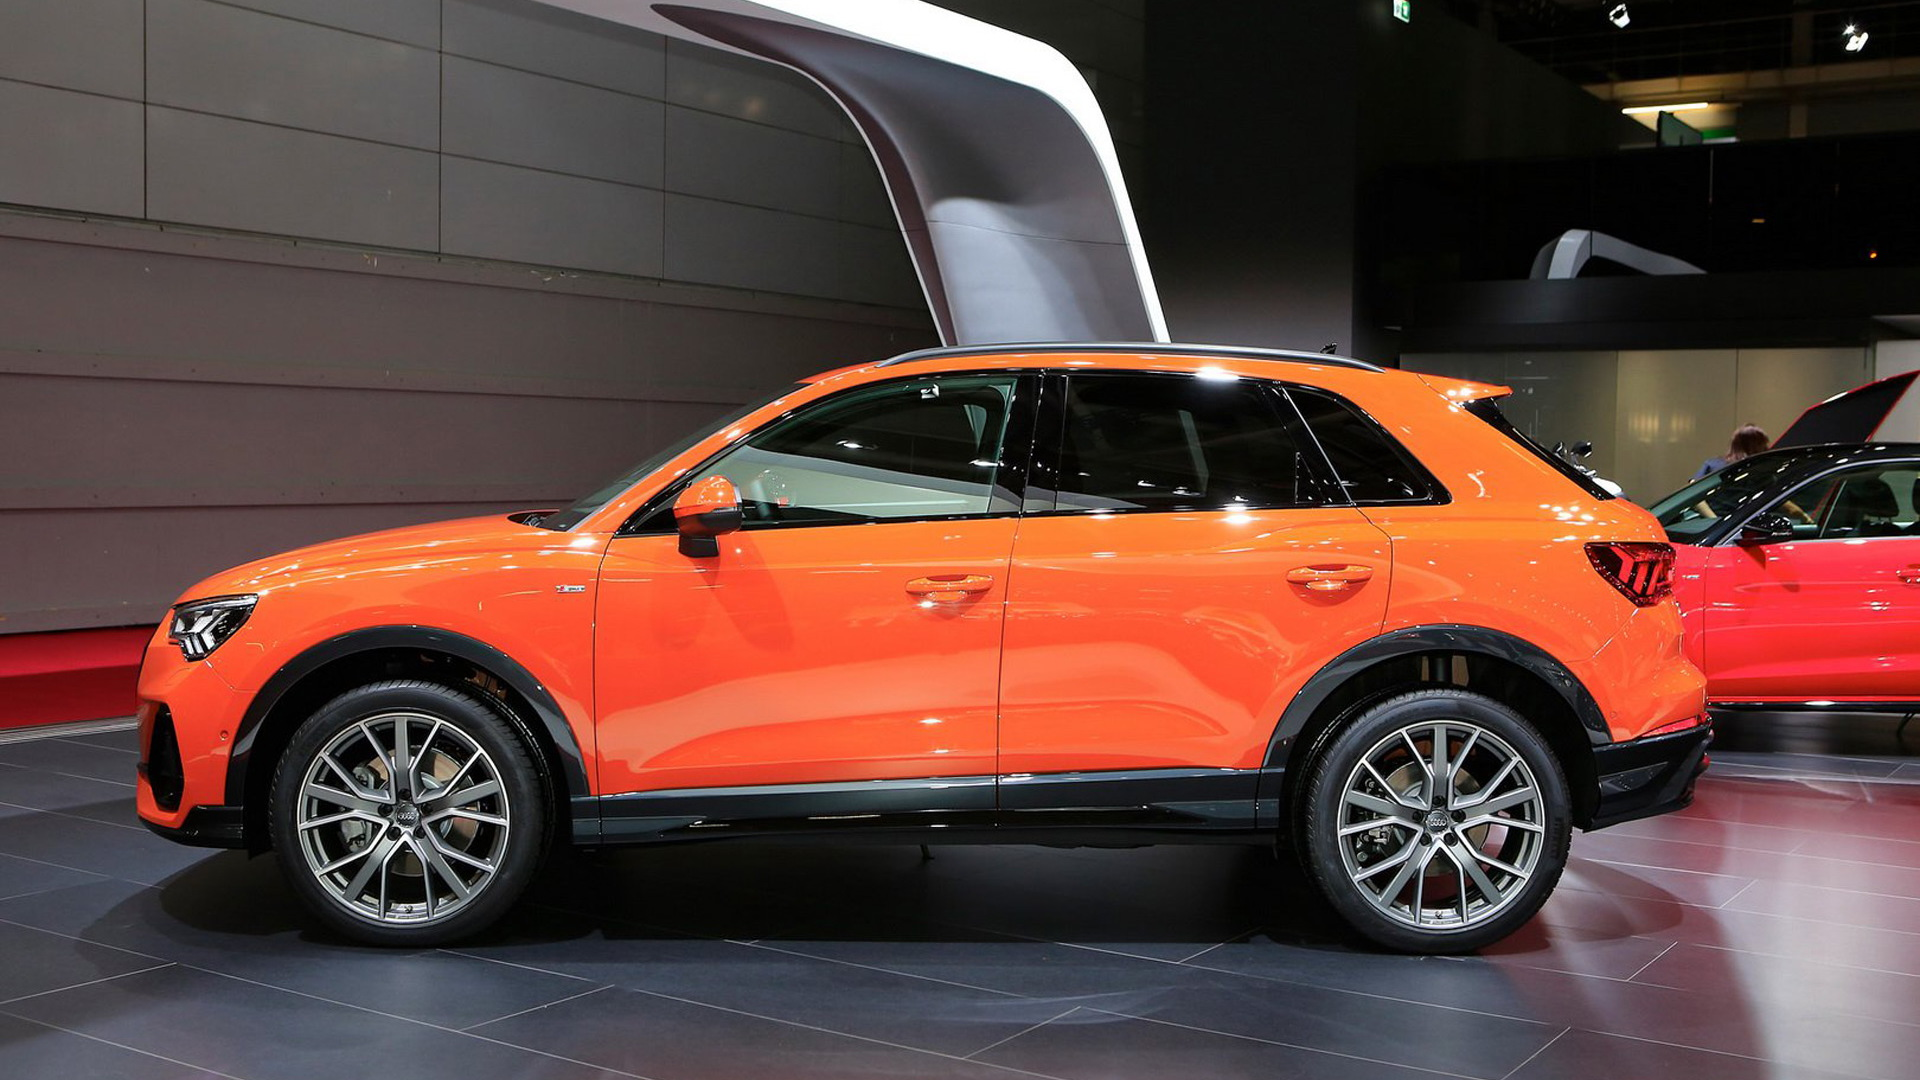 Tt Auto Sales >> 2019 Audi Q3 bows with sporty look, high-tech cabin